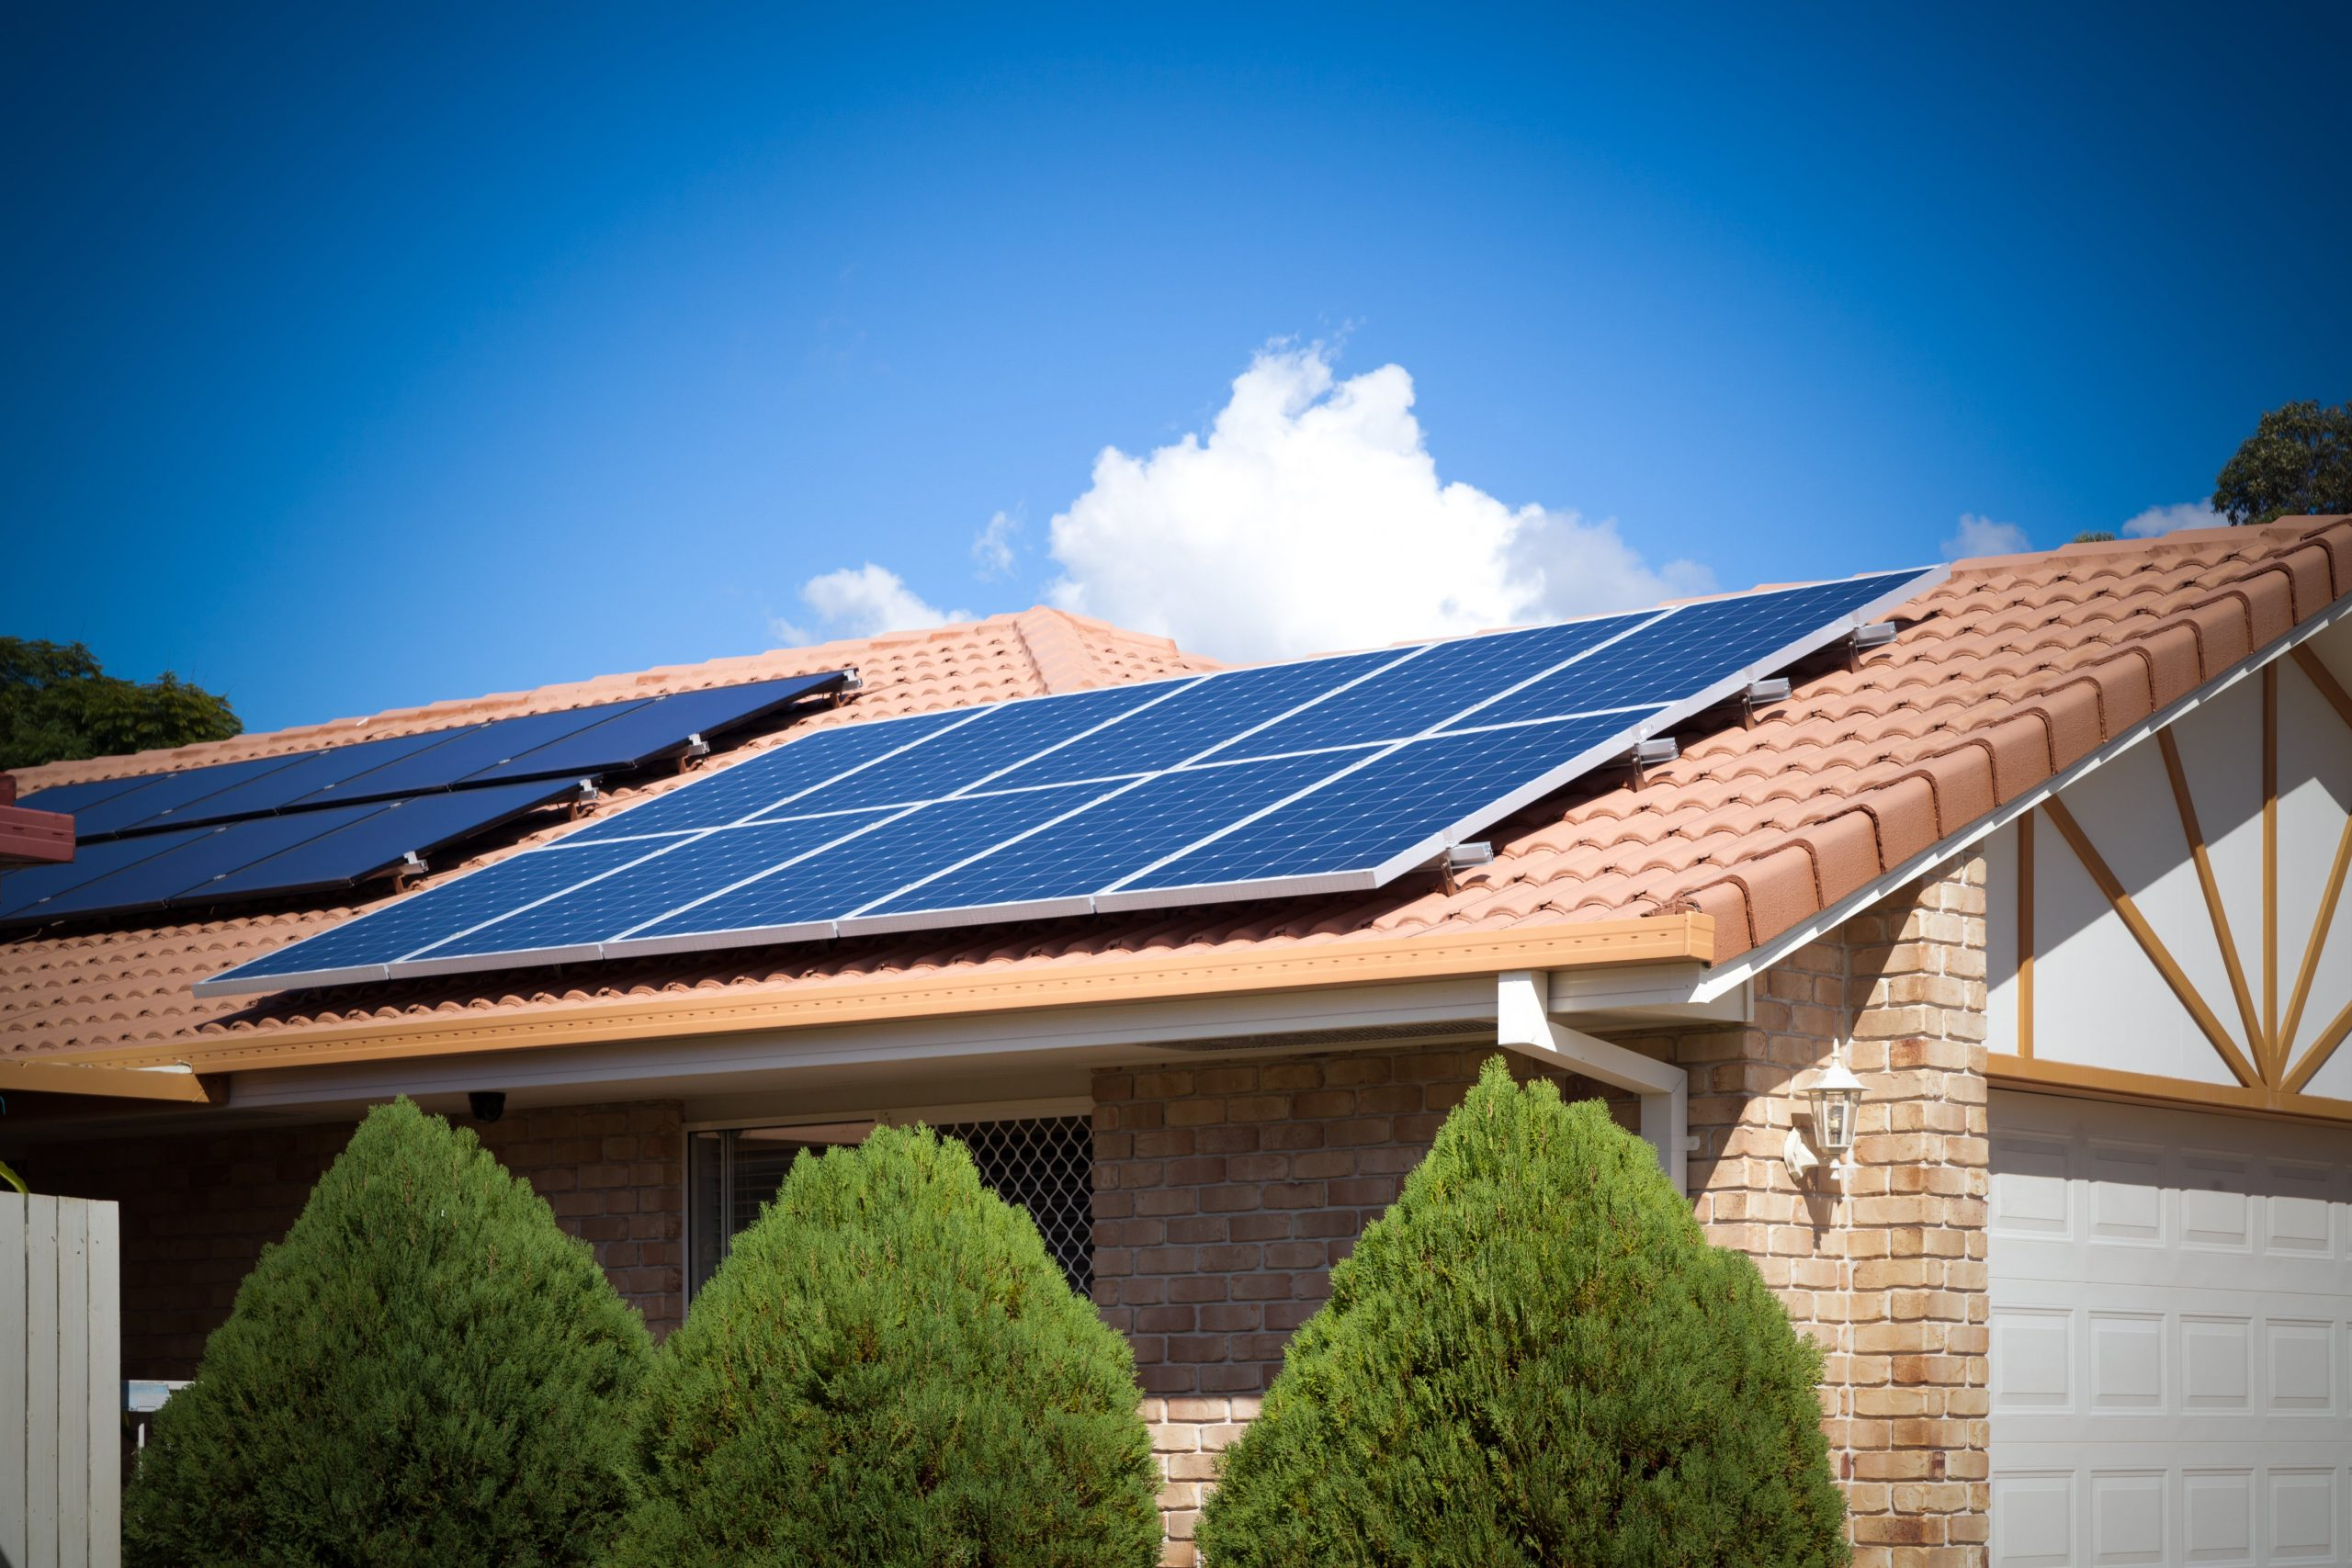 solar panels on roof with blue sky above